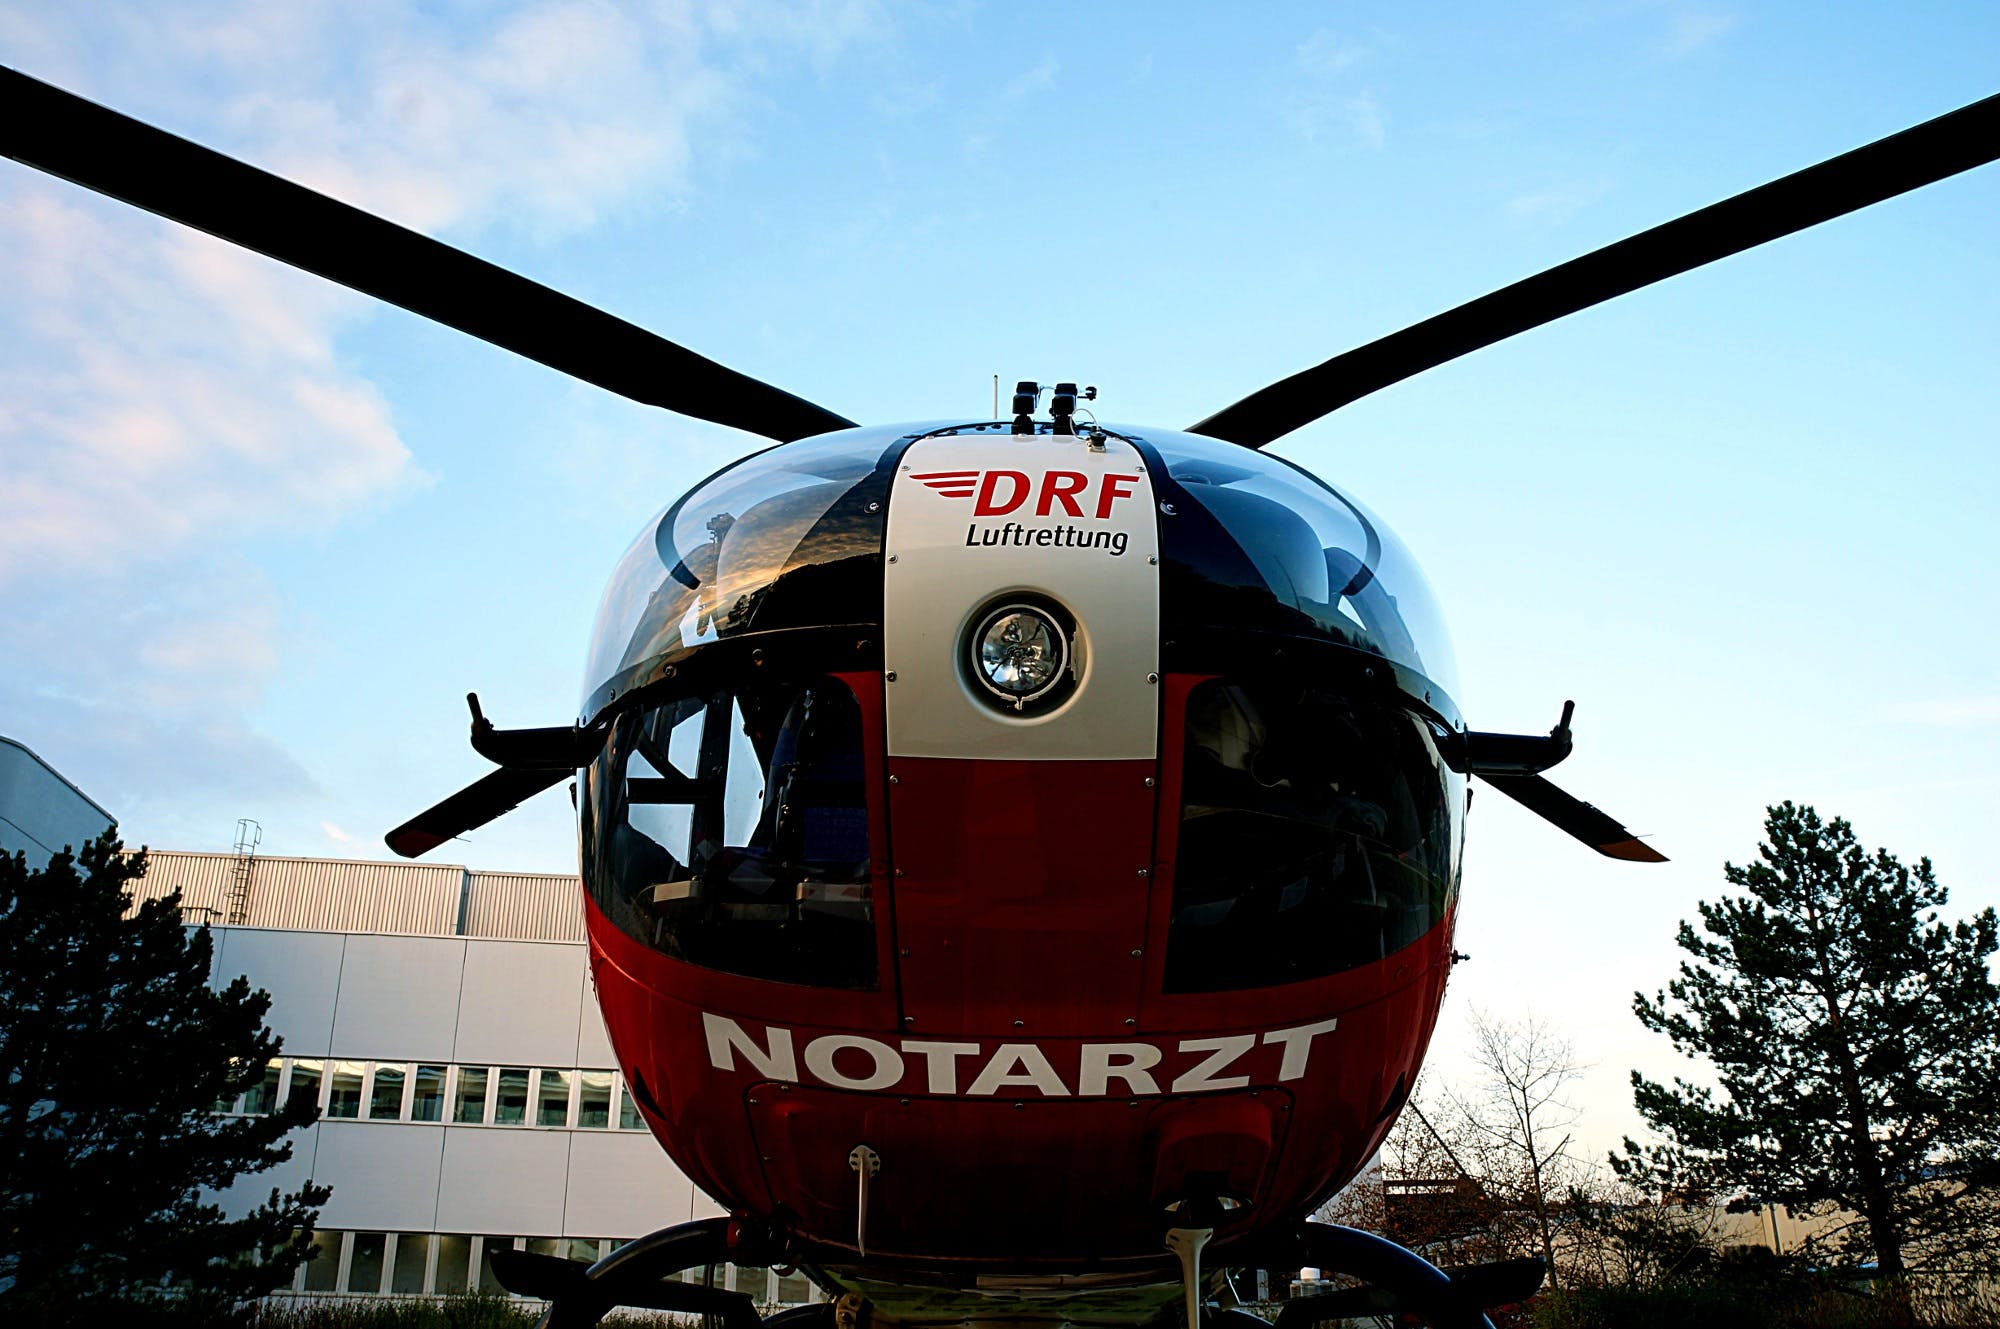 Low-angle Photography of Red and Black Notarzt Helicopter